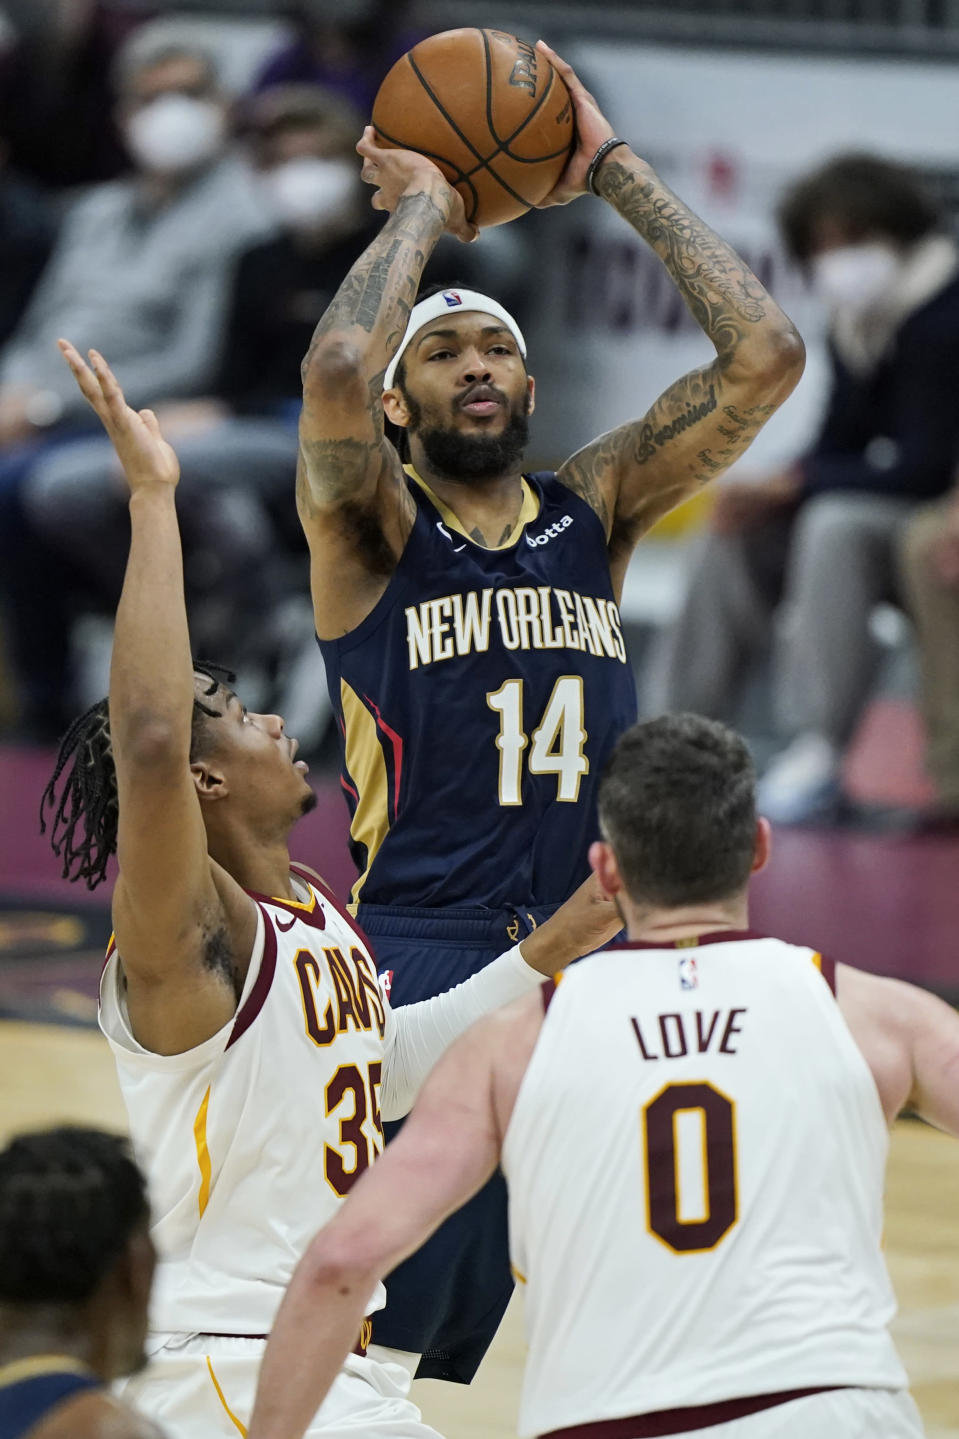 New Orleans Pelicans' Brandon Ingram, center, shoots over Cleveland Cavaliers' Isaac Okoro, left, and Kevin Love, right, in the second half of an NBA basketball game, Sunday, April 11, 2021, in Cleveland. (AP Photo/Tony Dejak)